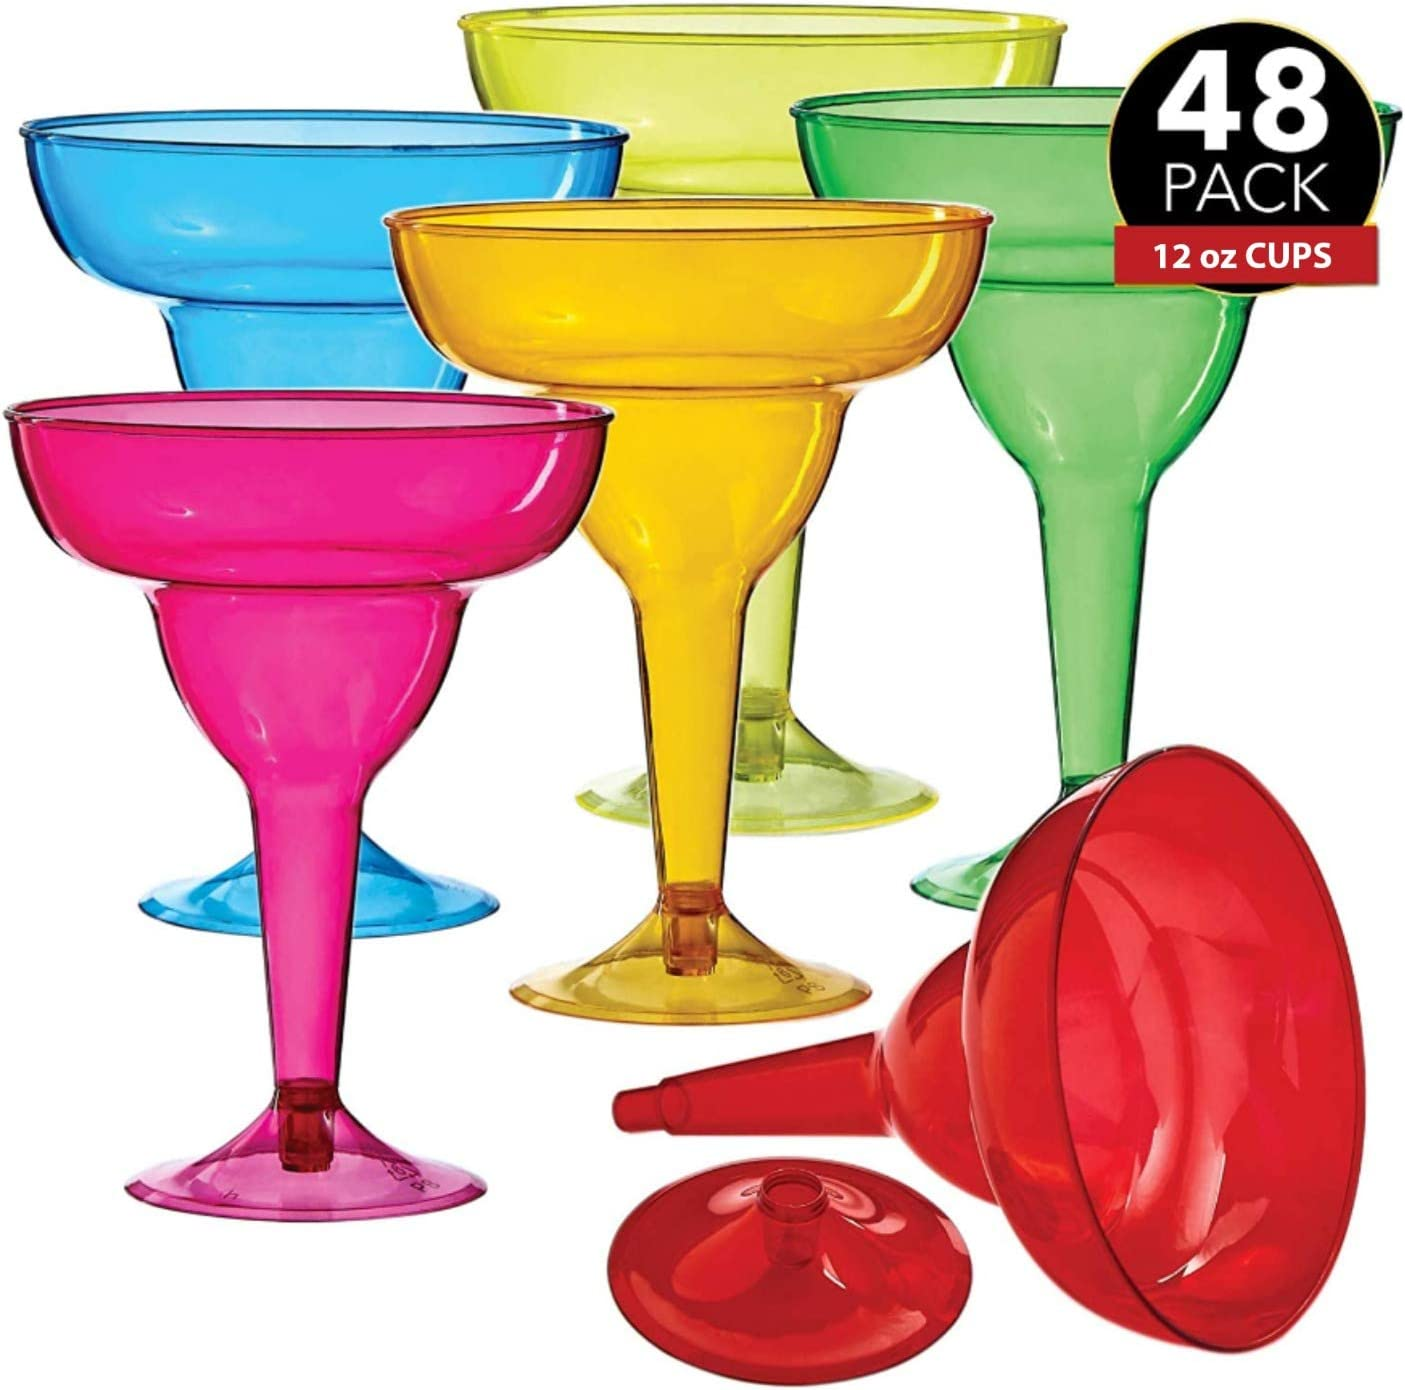 48 Plastic Margarita Glasses - 12 oz. | Hard Assorted Colors Plastic Cocktail Cups | Disposable Party Cups | Large Margarita Glasses | Plastic Cocktail Coupe | Frozen Drink Cups